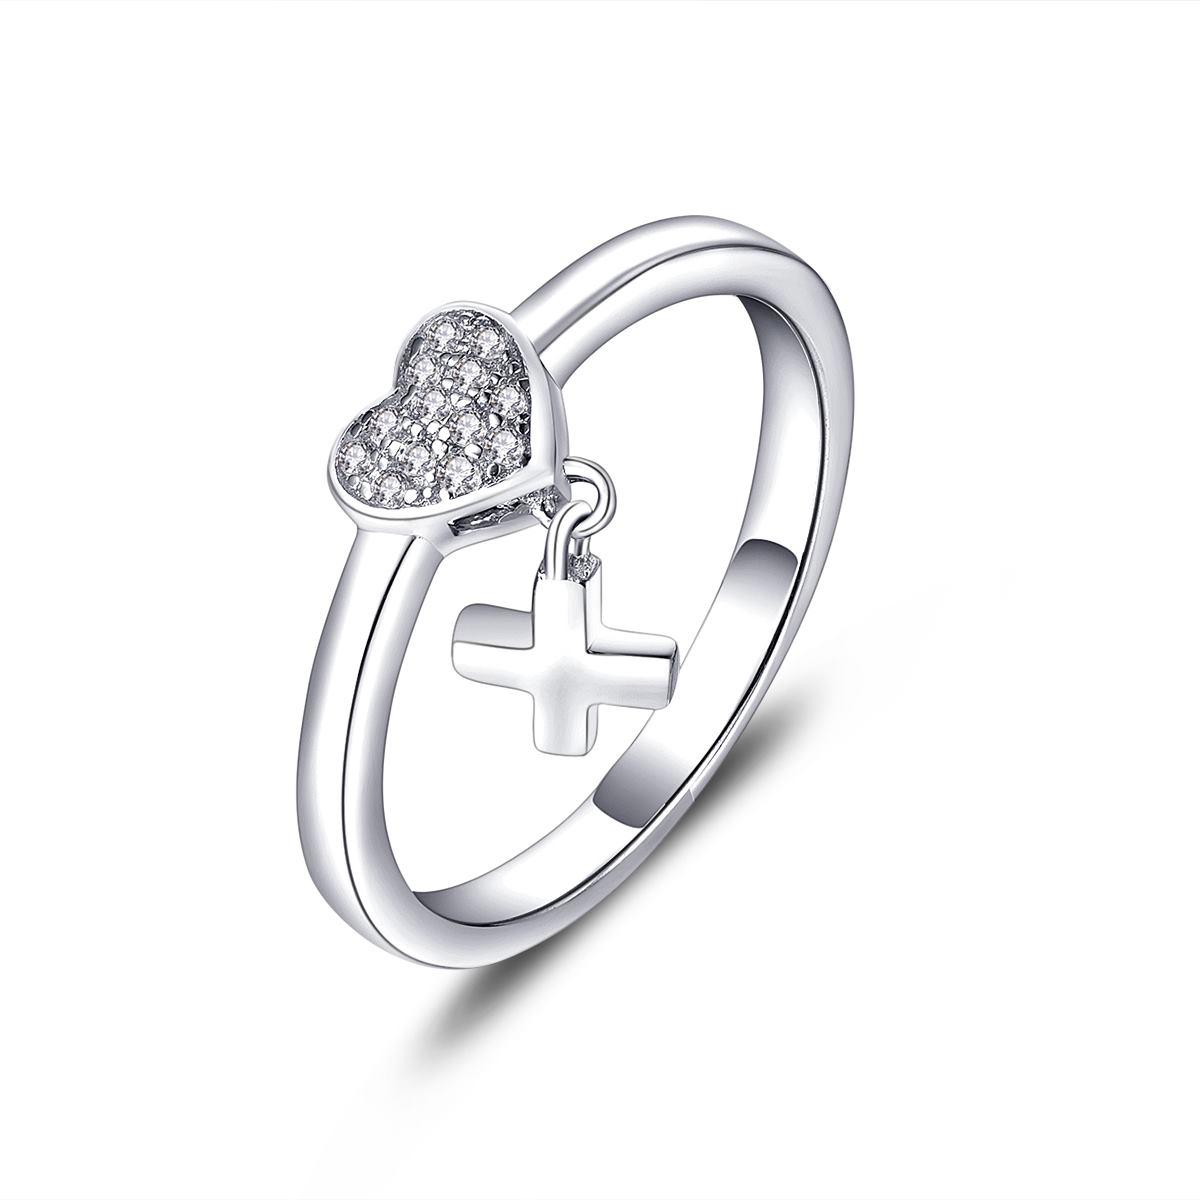 2016 925 Sterling Silver Heart ring for Women Wedding with Cubic Zirconia  Stone Lover Infinity Gift Cross New Fine Jewelry Wholsale DL61810A UK 2019  From ... 7d3fff9808